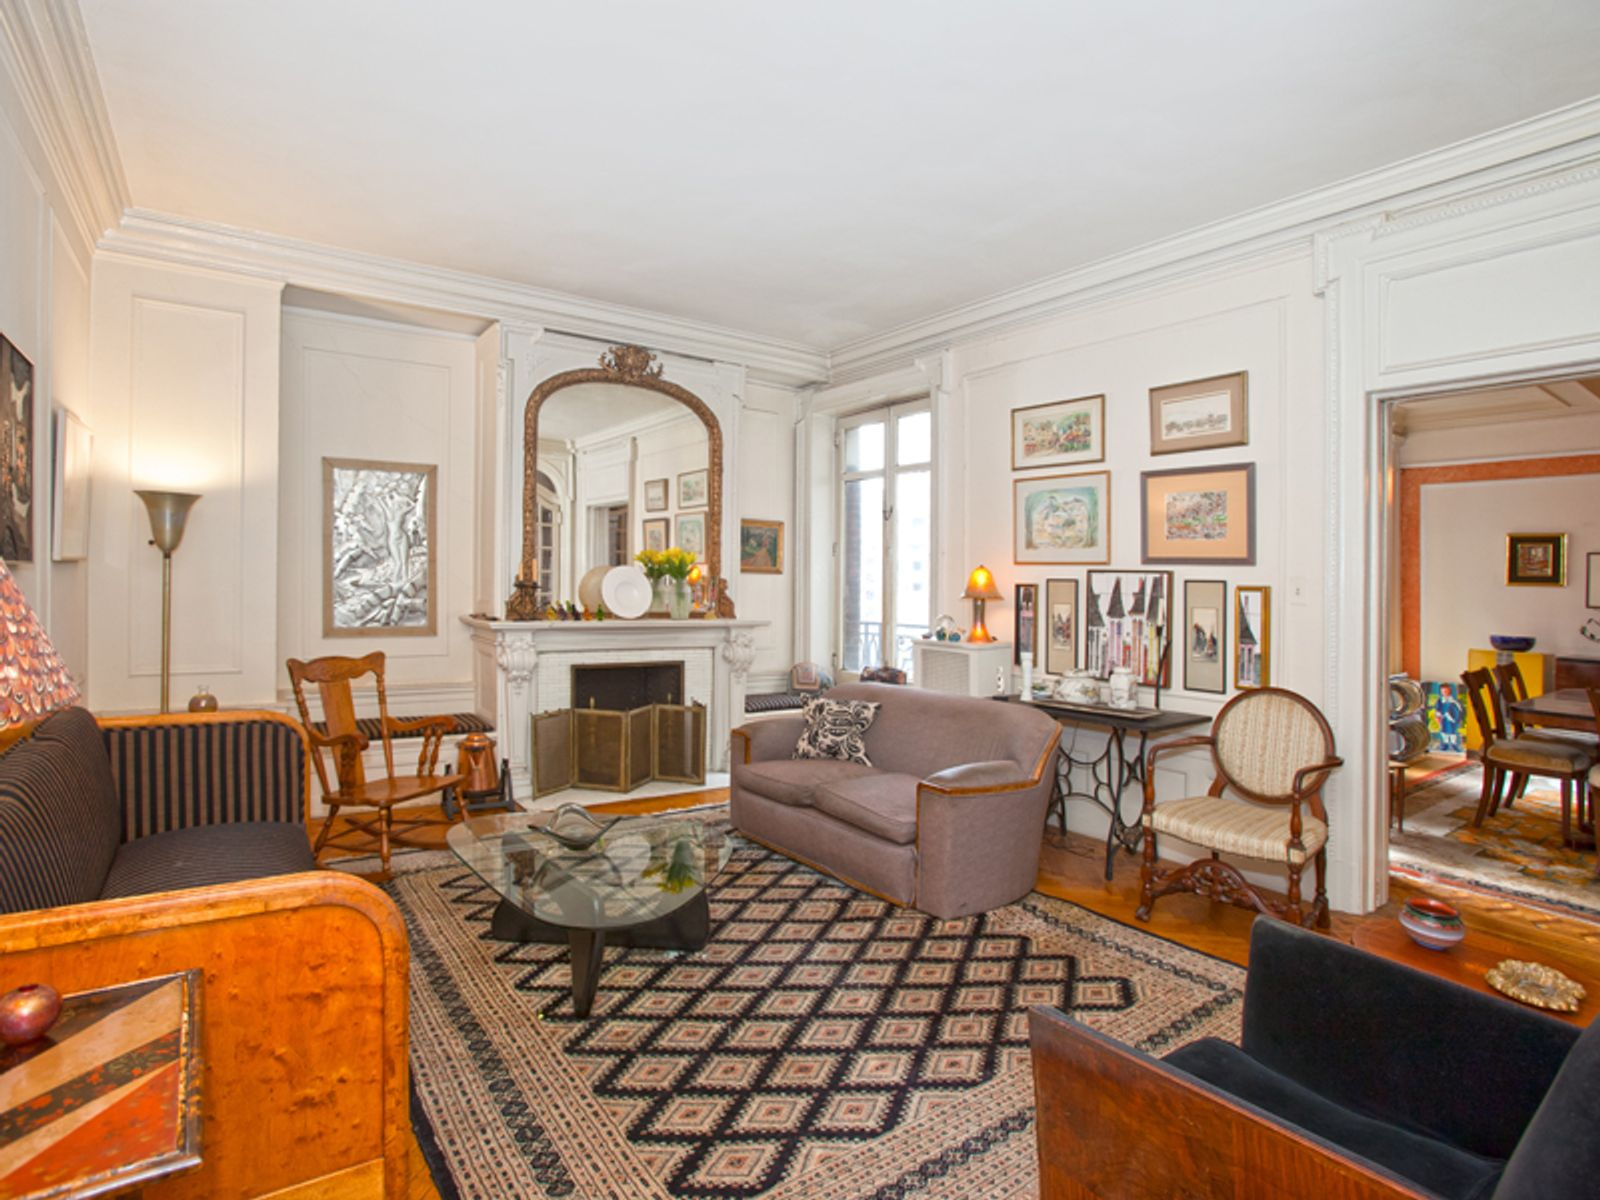 171 West 71st Street, New York NY Cooperative - New York City Real Estate